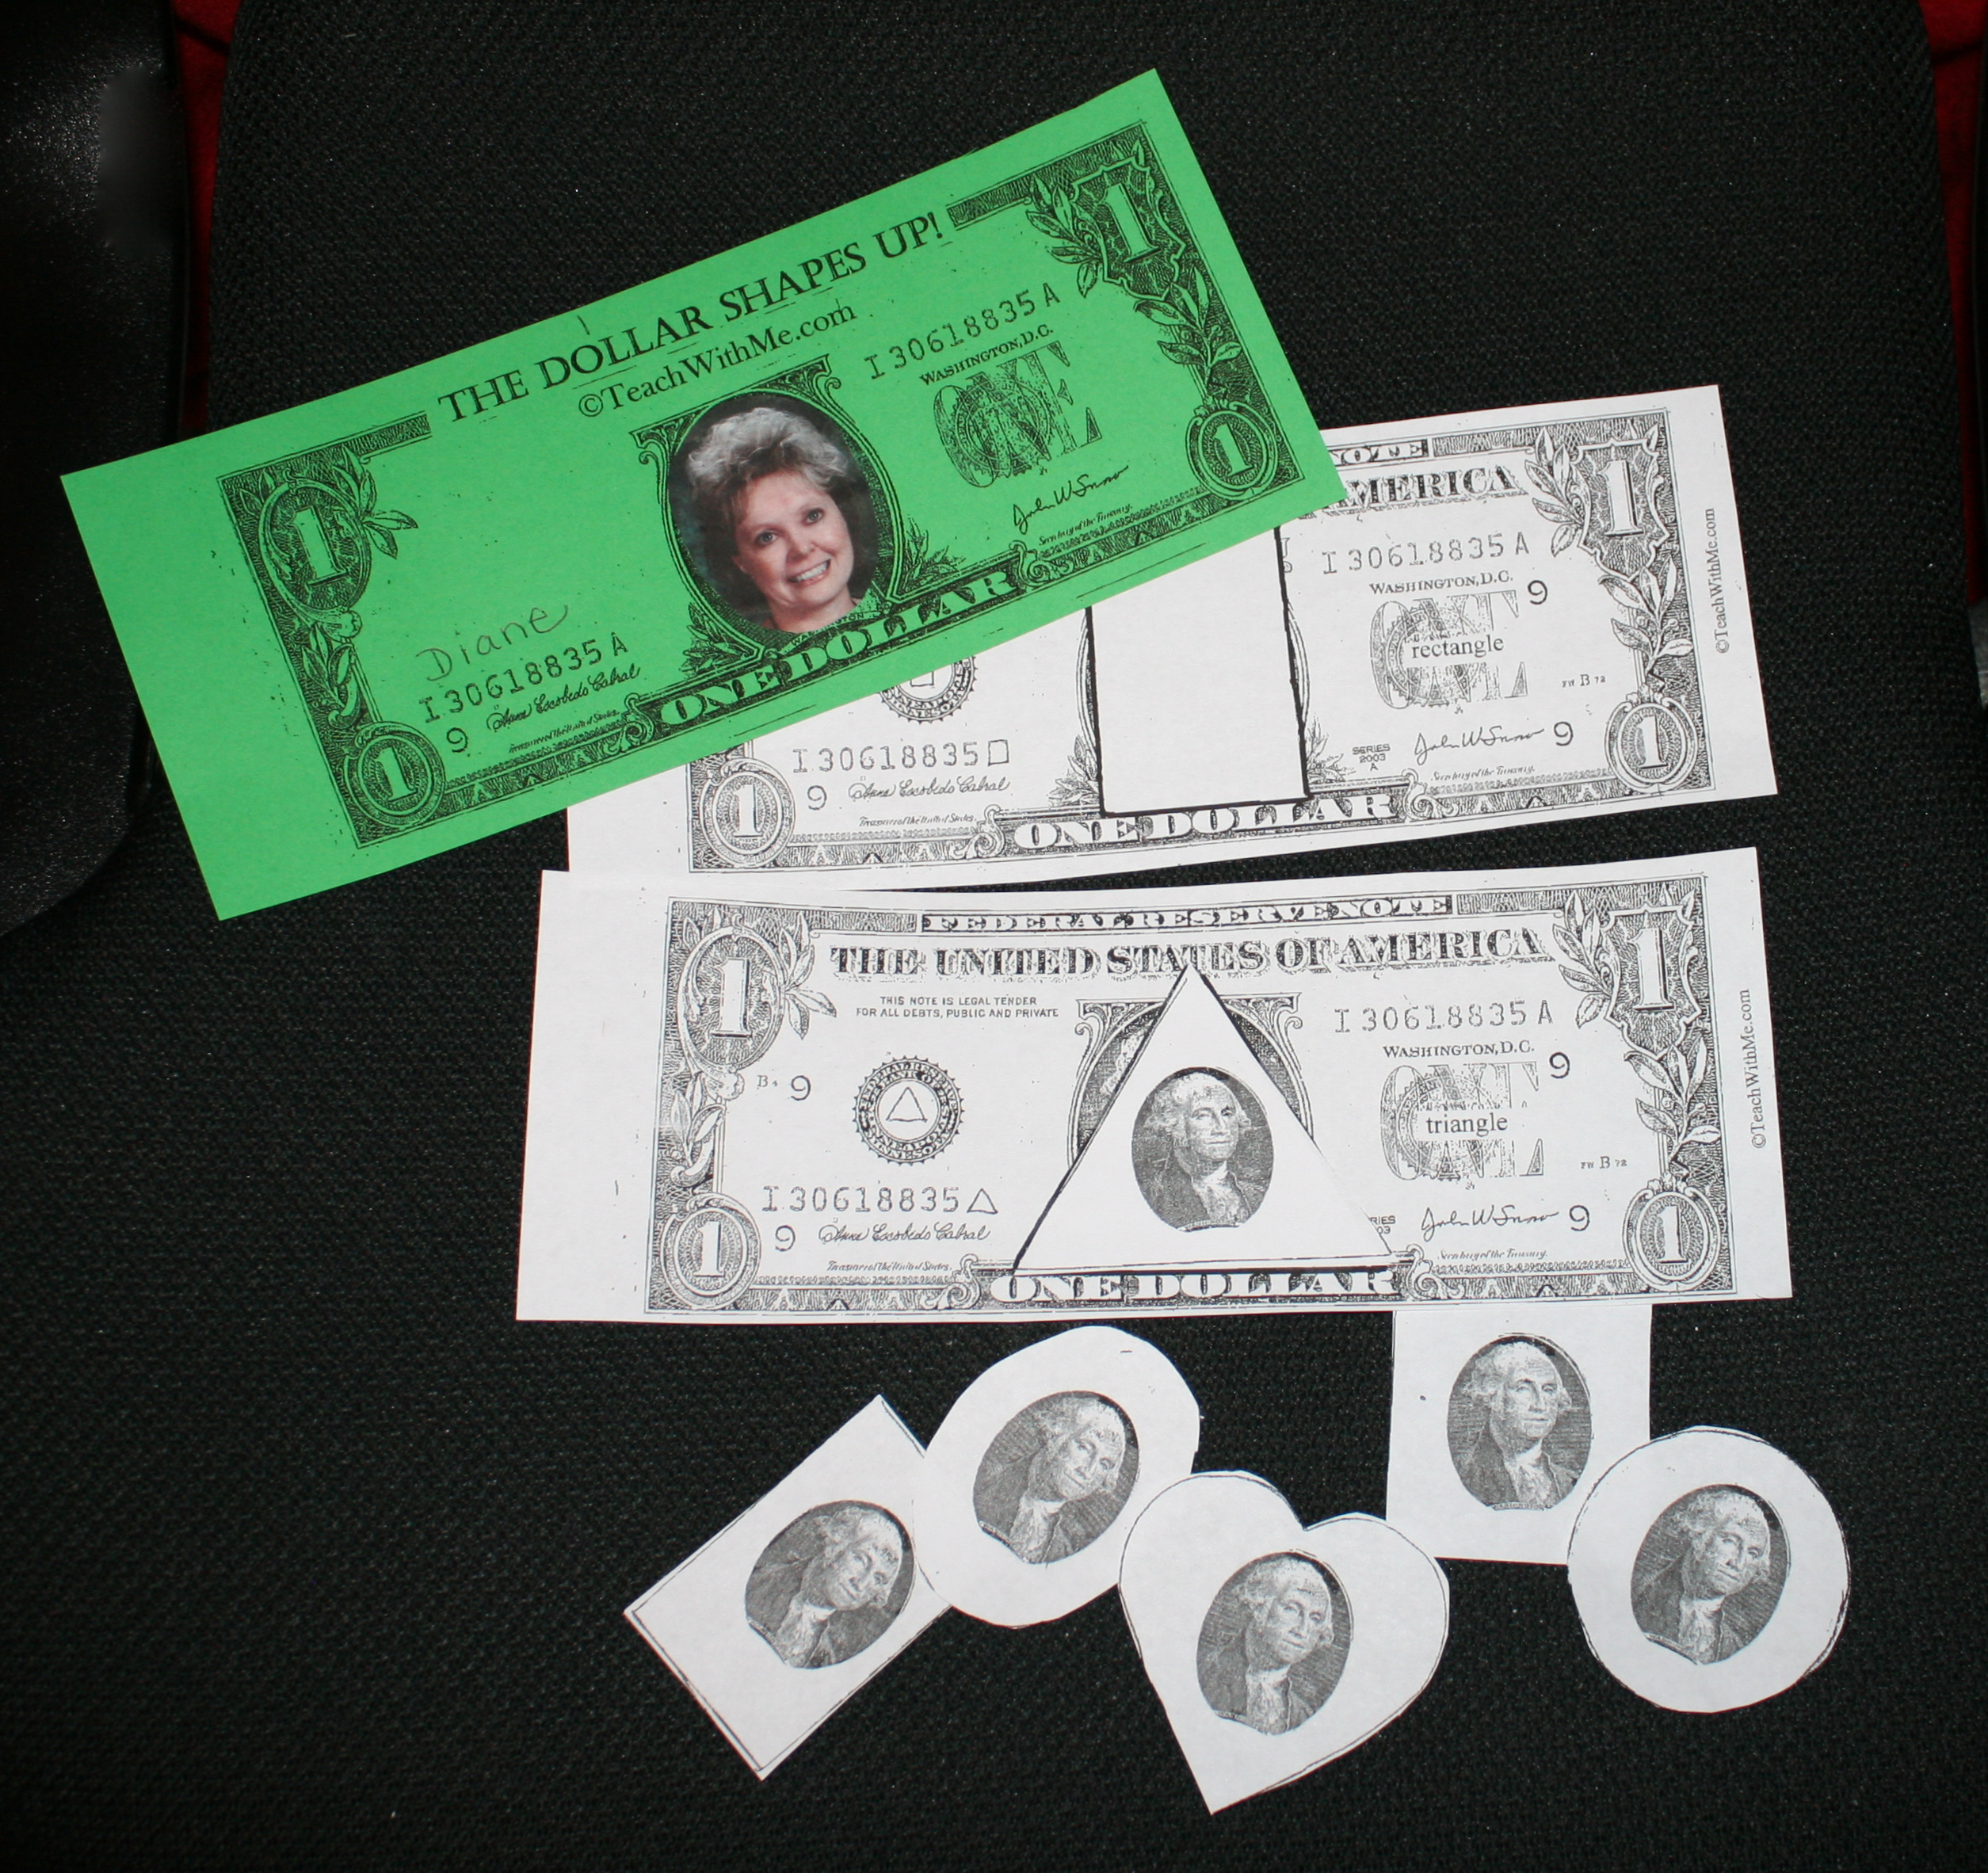 dollar booklet, money booklet, washington booklet, washington ideas, presidents day ideas, presidents day activities, shape ideas, shape lessons, shape activities, shape booklet, shape centers, presidents day lessons,